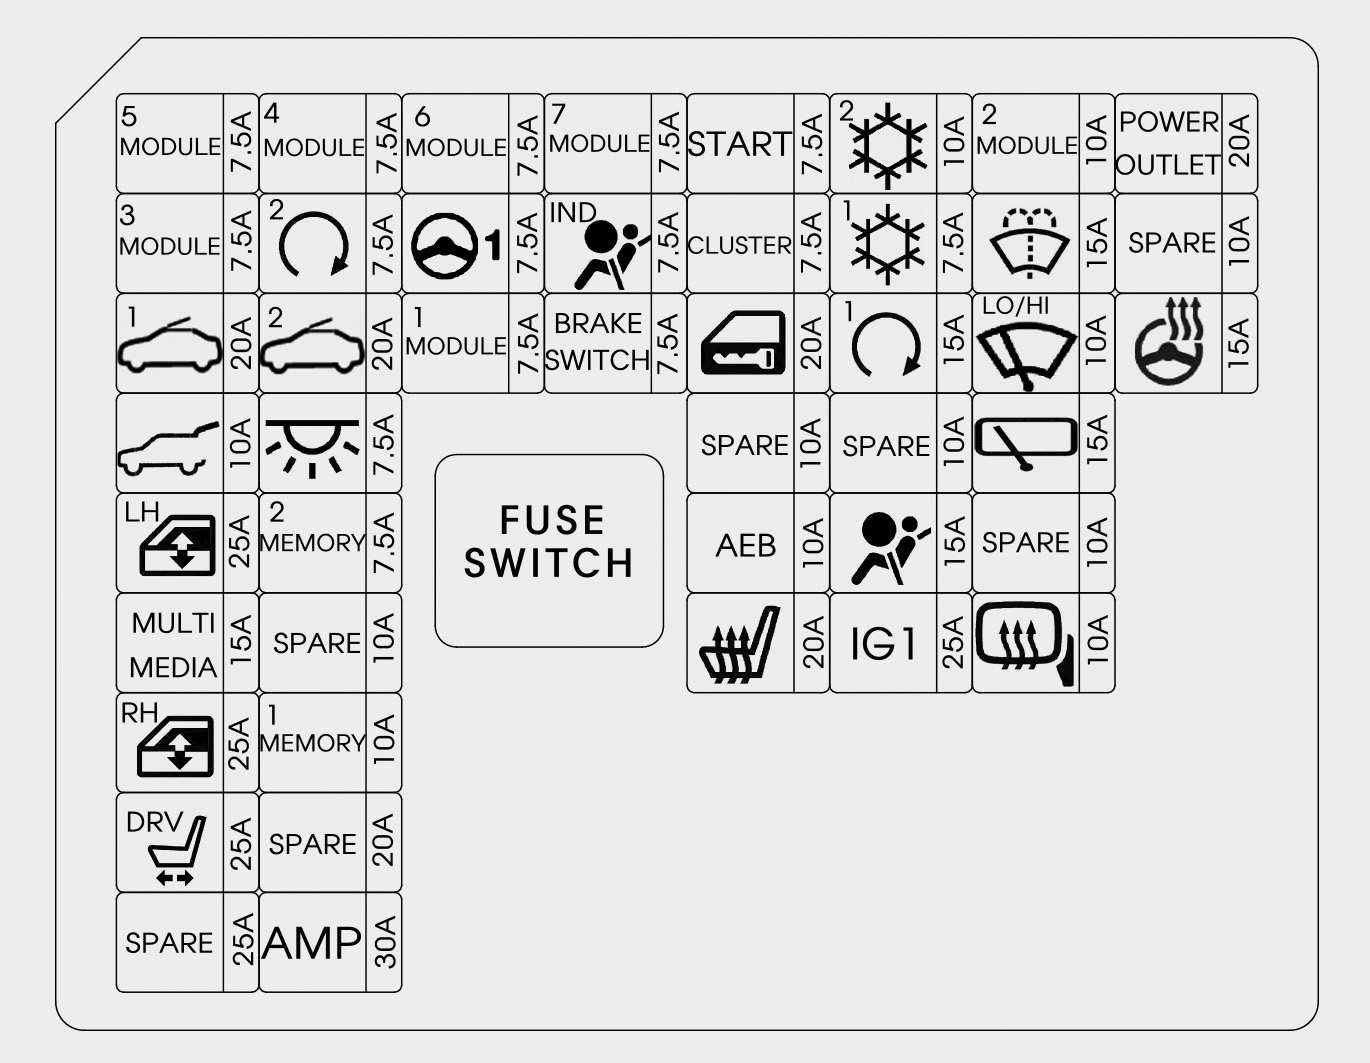 Hyundai Getz 2009 Fuse Box Diagram Great Installation Of Wiring 2012 Azera Third Level Rh 10 19 21 Jacobwinterstein Com 2006